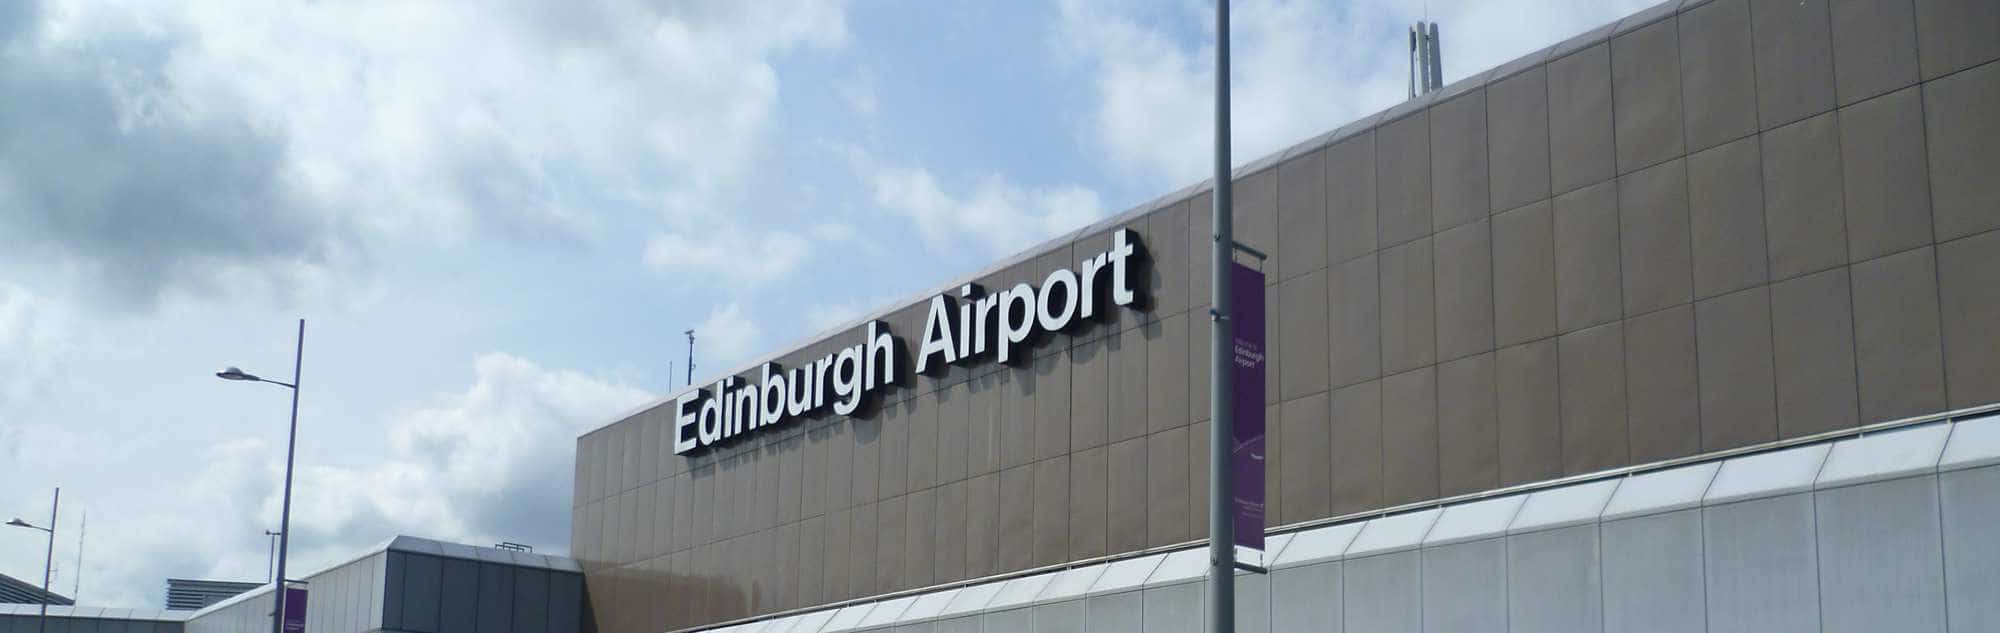 Airport edinburgh-edi